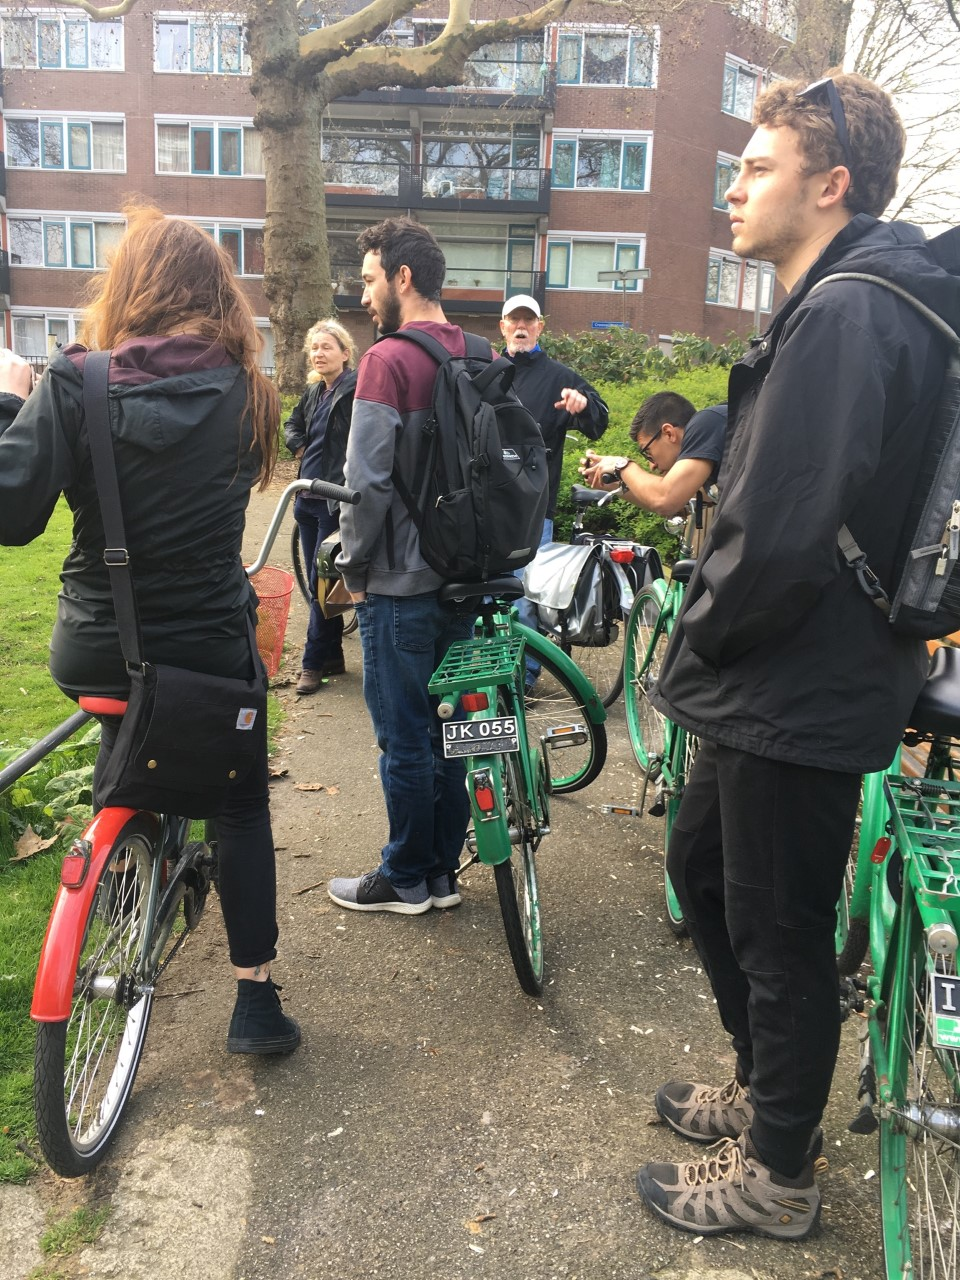 Students standing with bicycles.